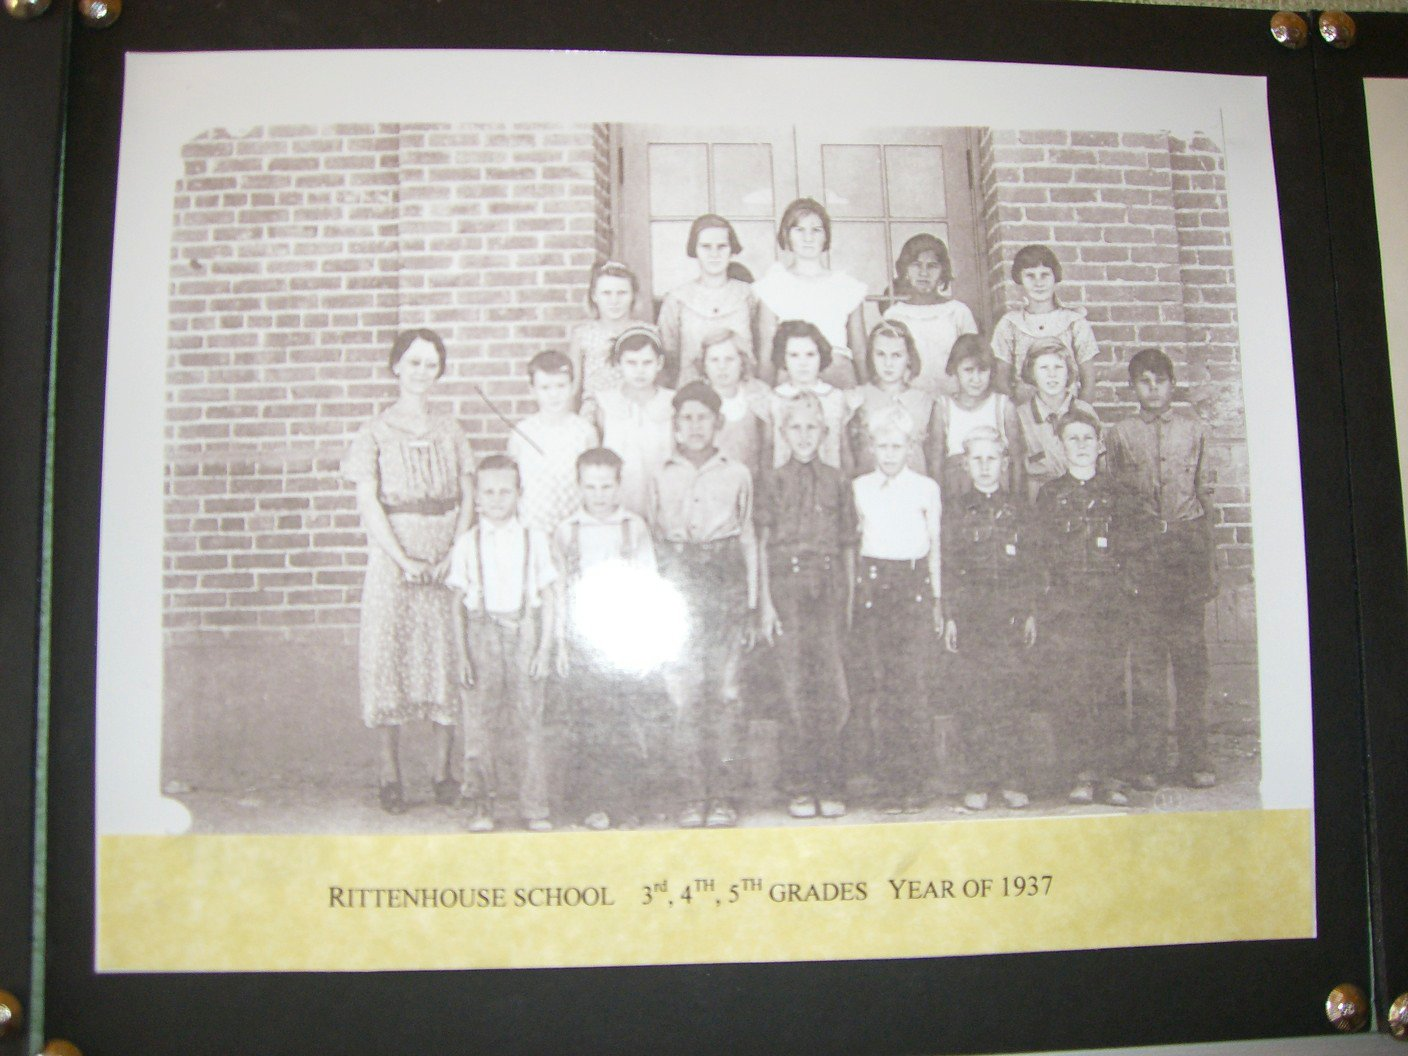 1937 class photo at Rittenhouse Elementary for 3-5 grades